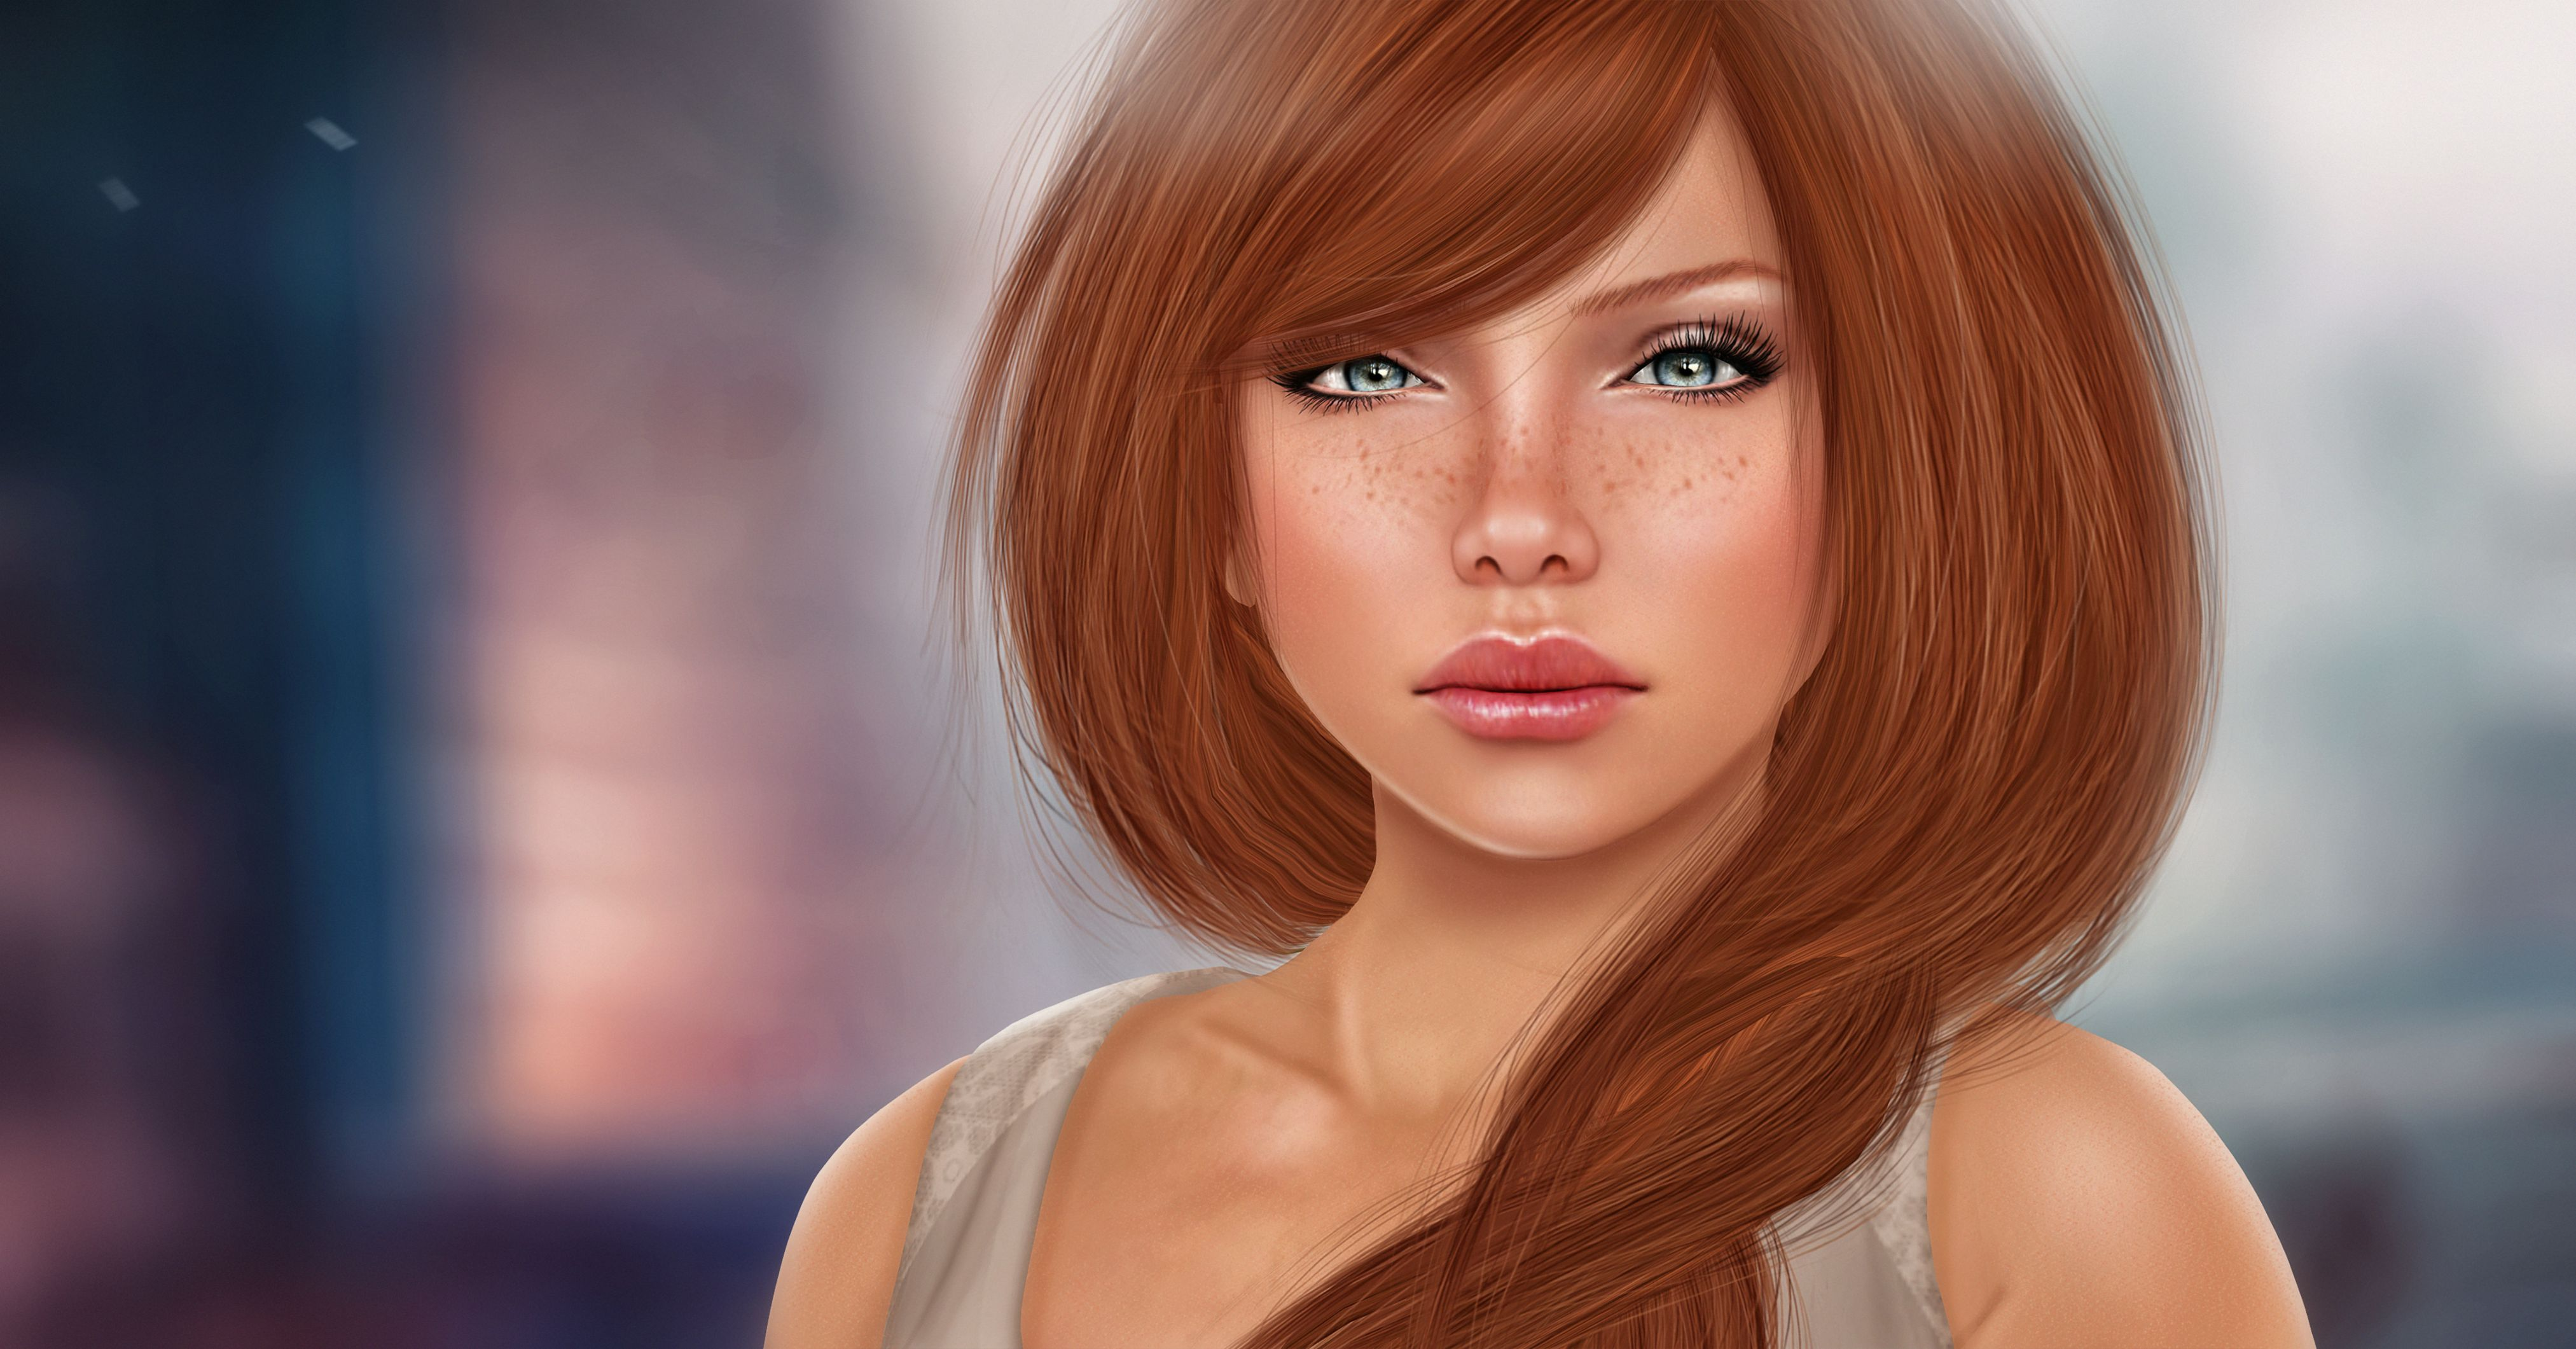 123907 download wallpaper Redhead, Freckles, Girl, Makeup, Art screensavers and pictures for free